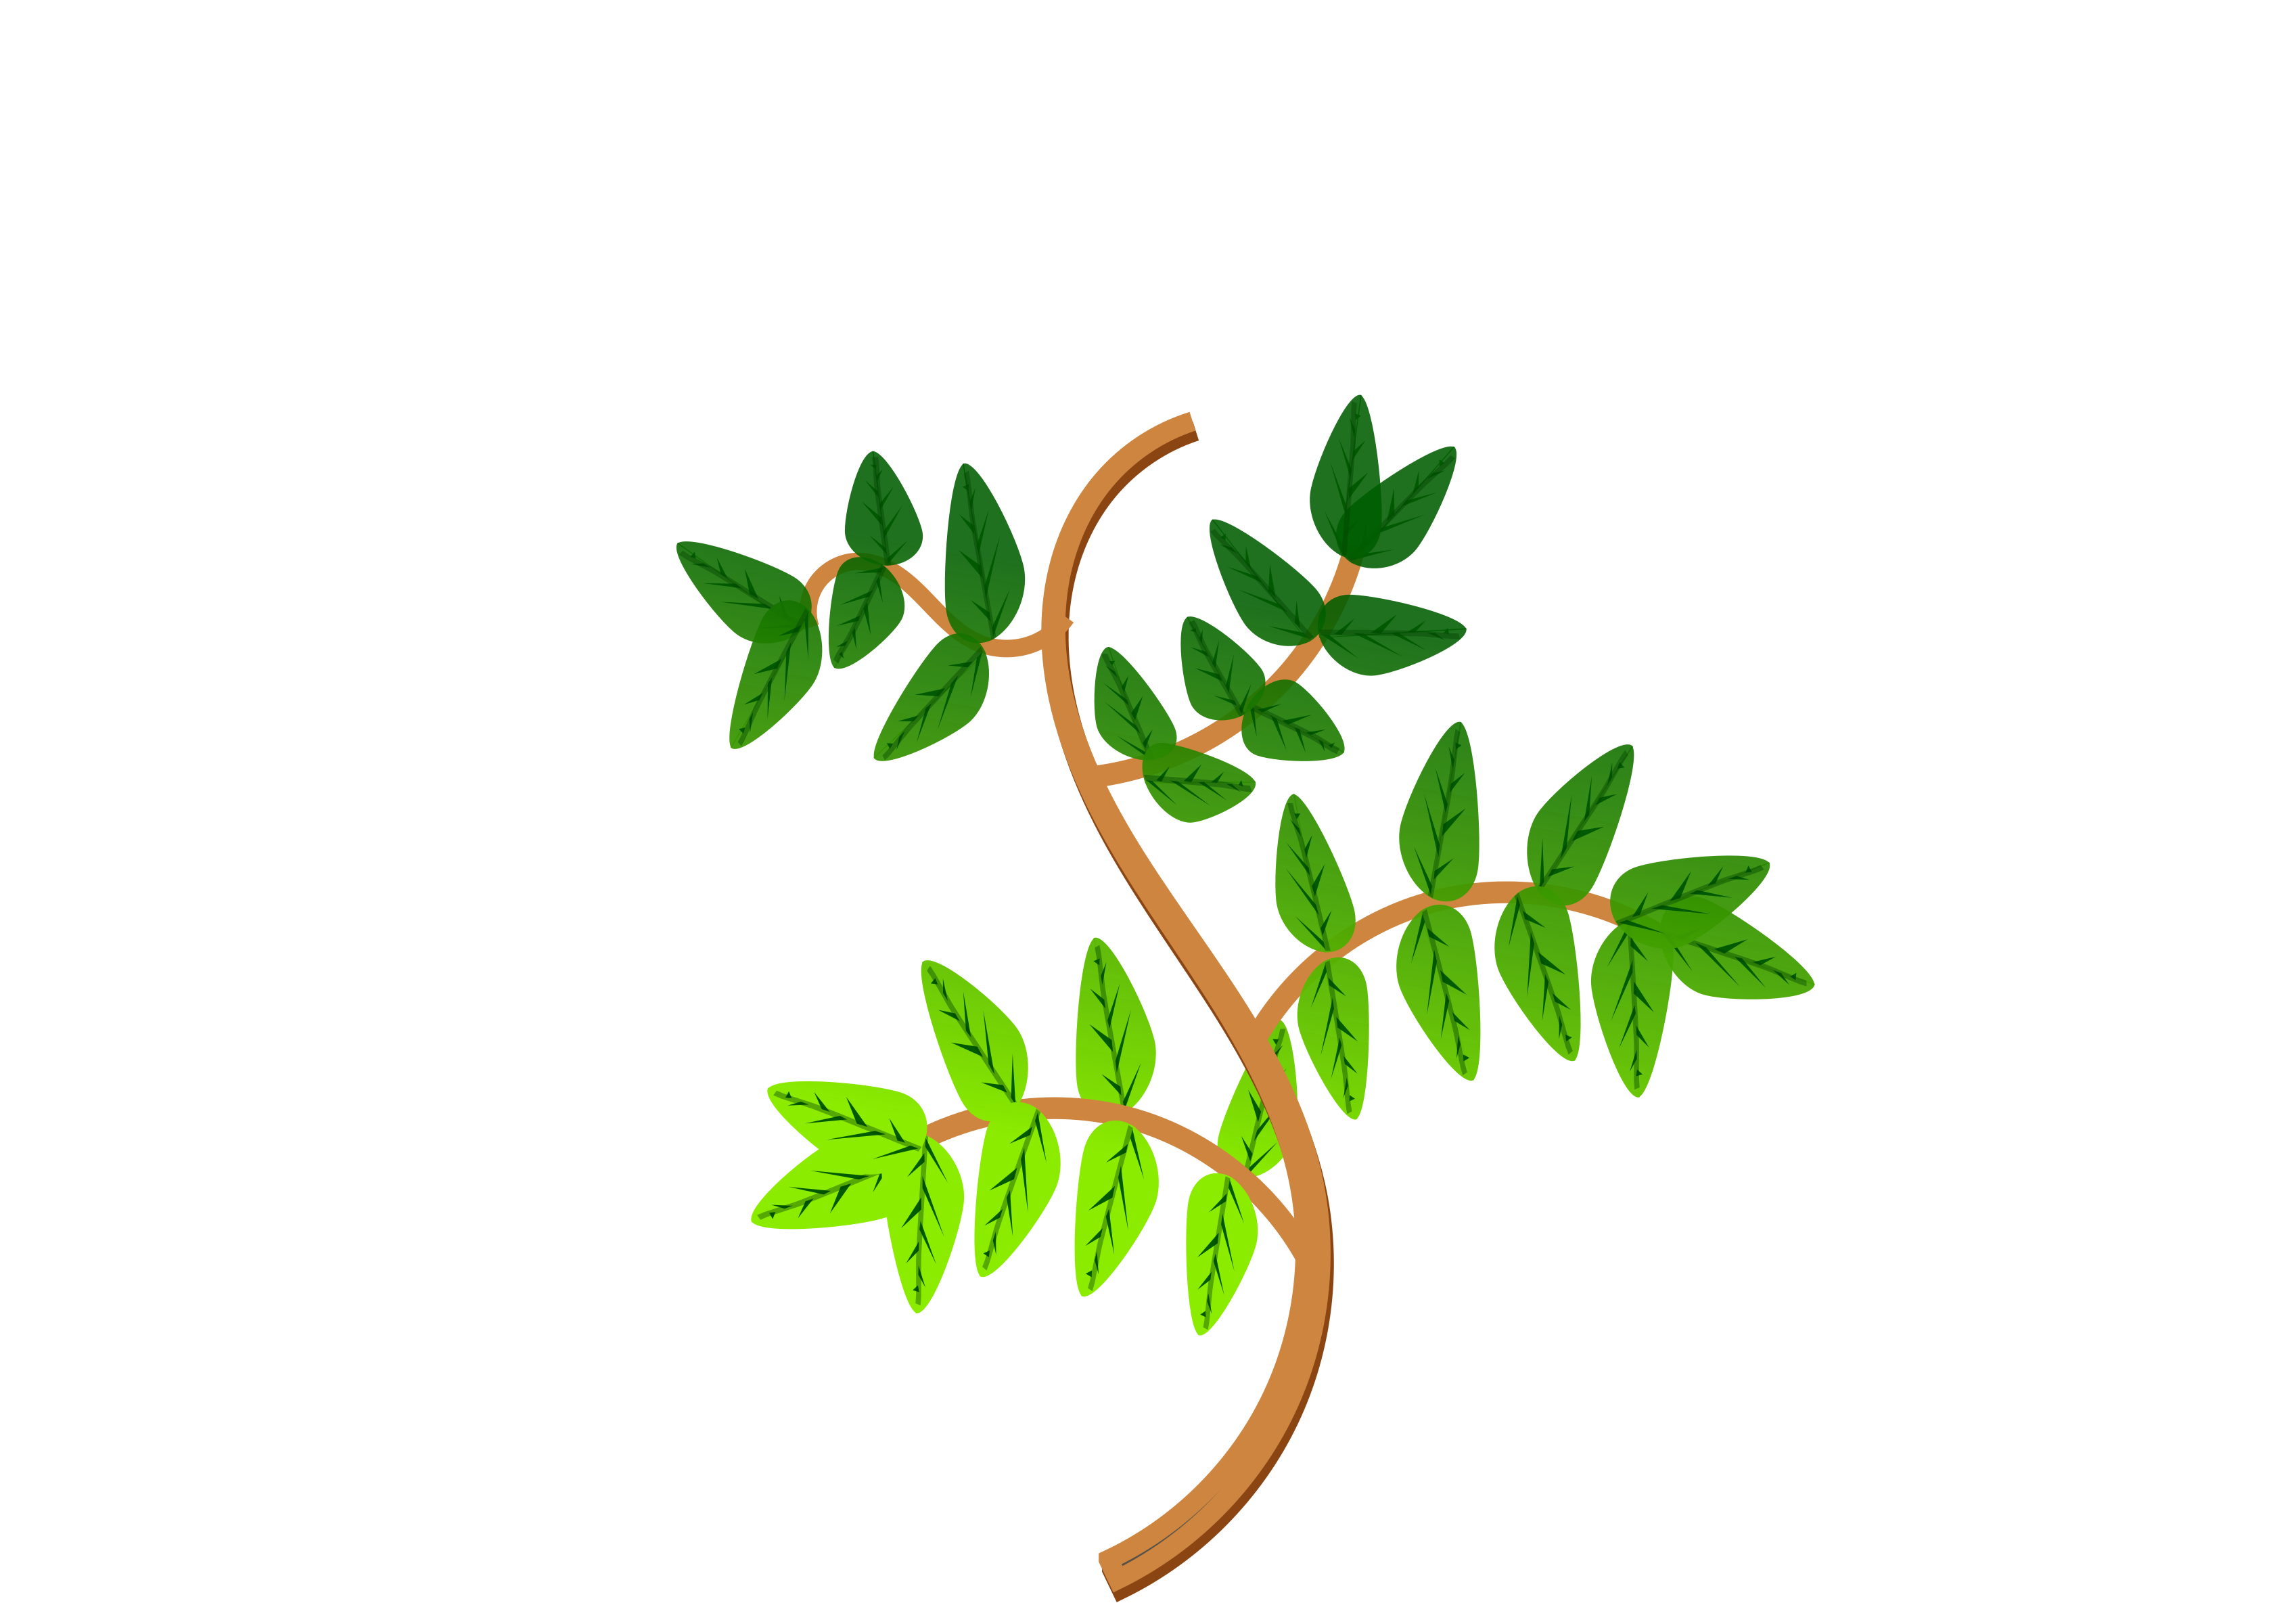 2 clipart leaf. Leaves and branches big